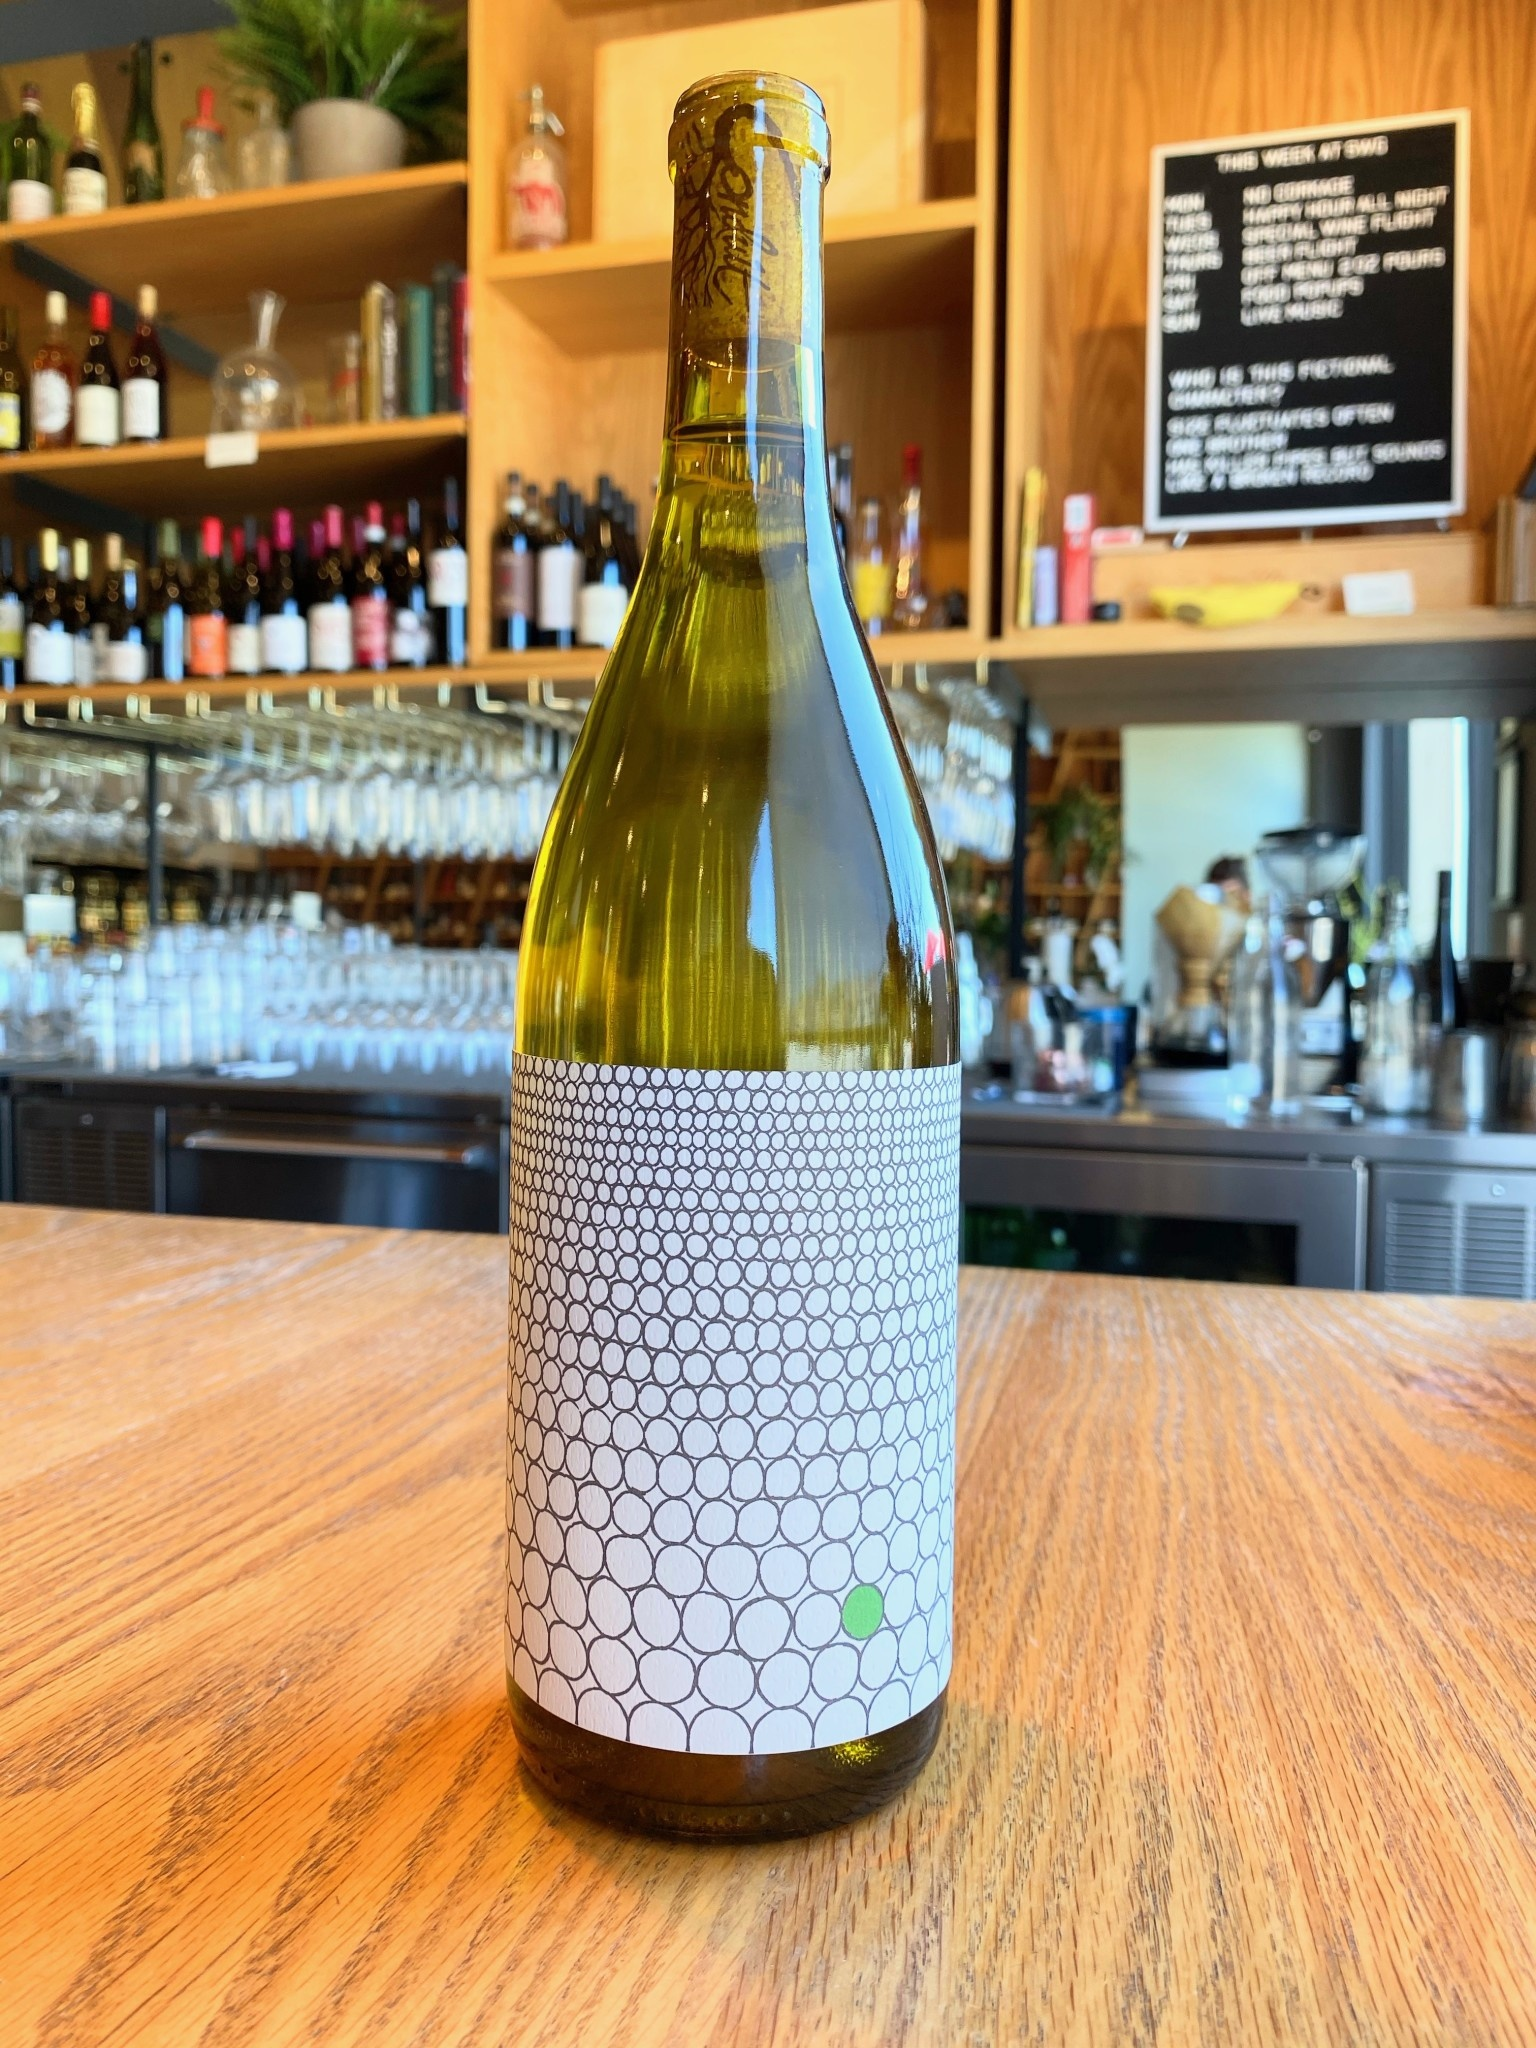 Conduit 2017 Conduit Contra Costa County Marsanne Rousanne 750ml